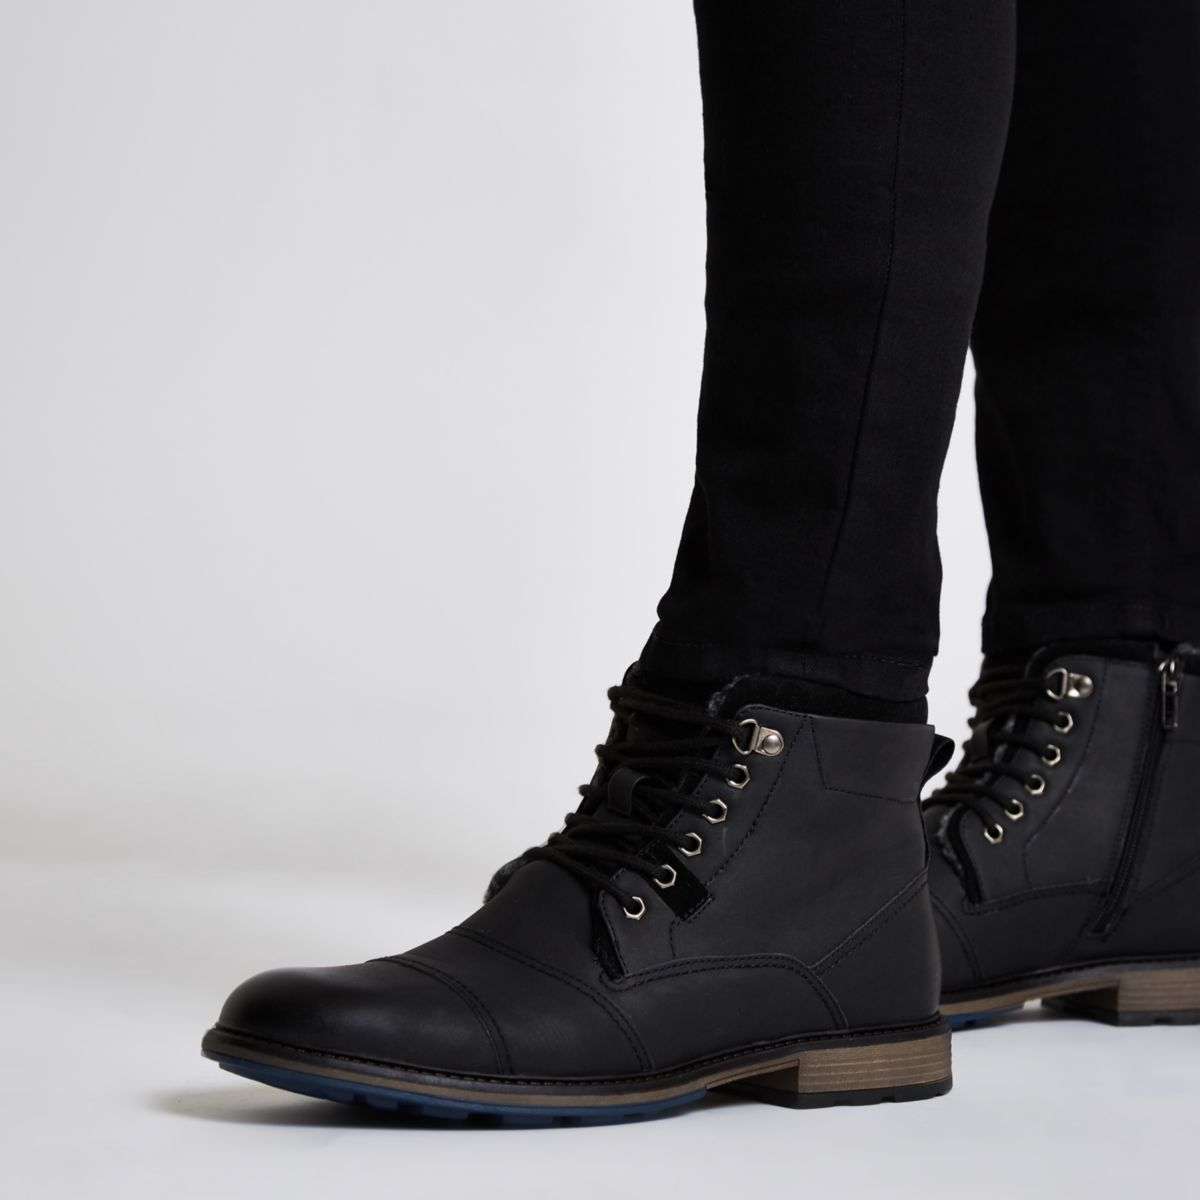 Black lace-up fleece lined military boots